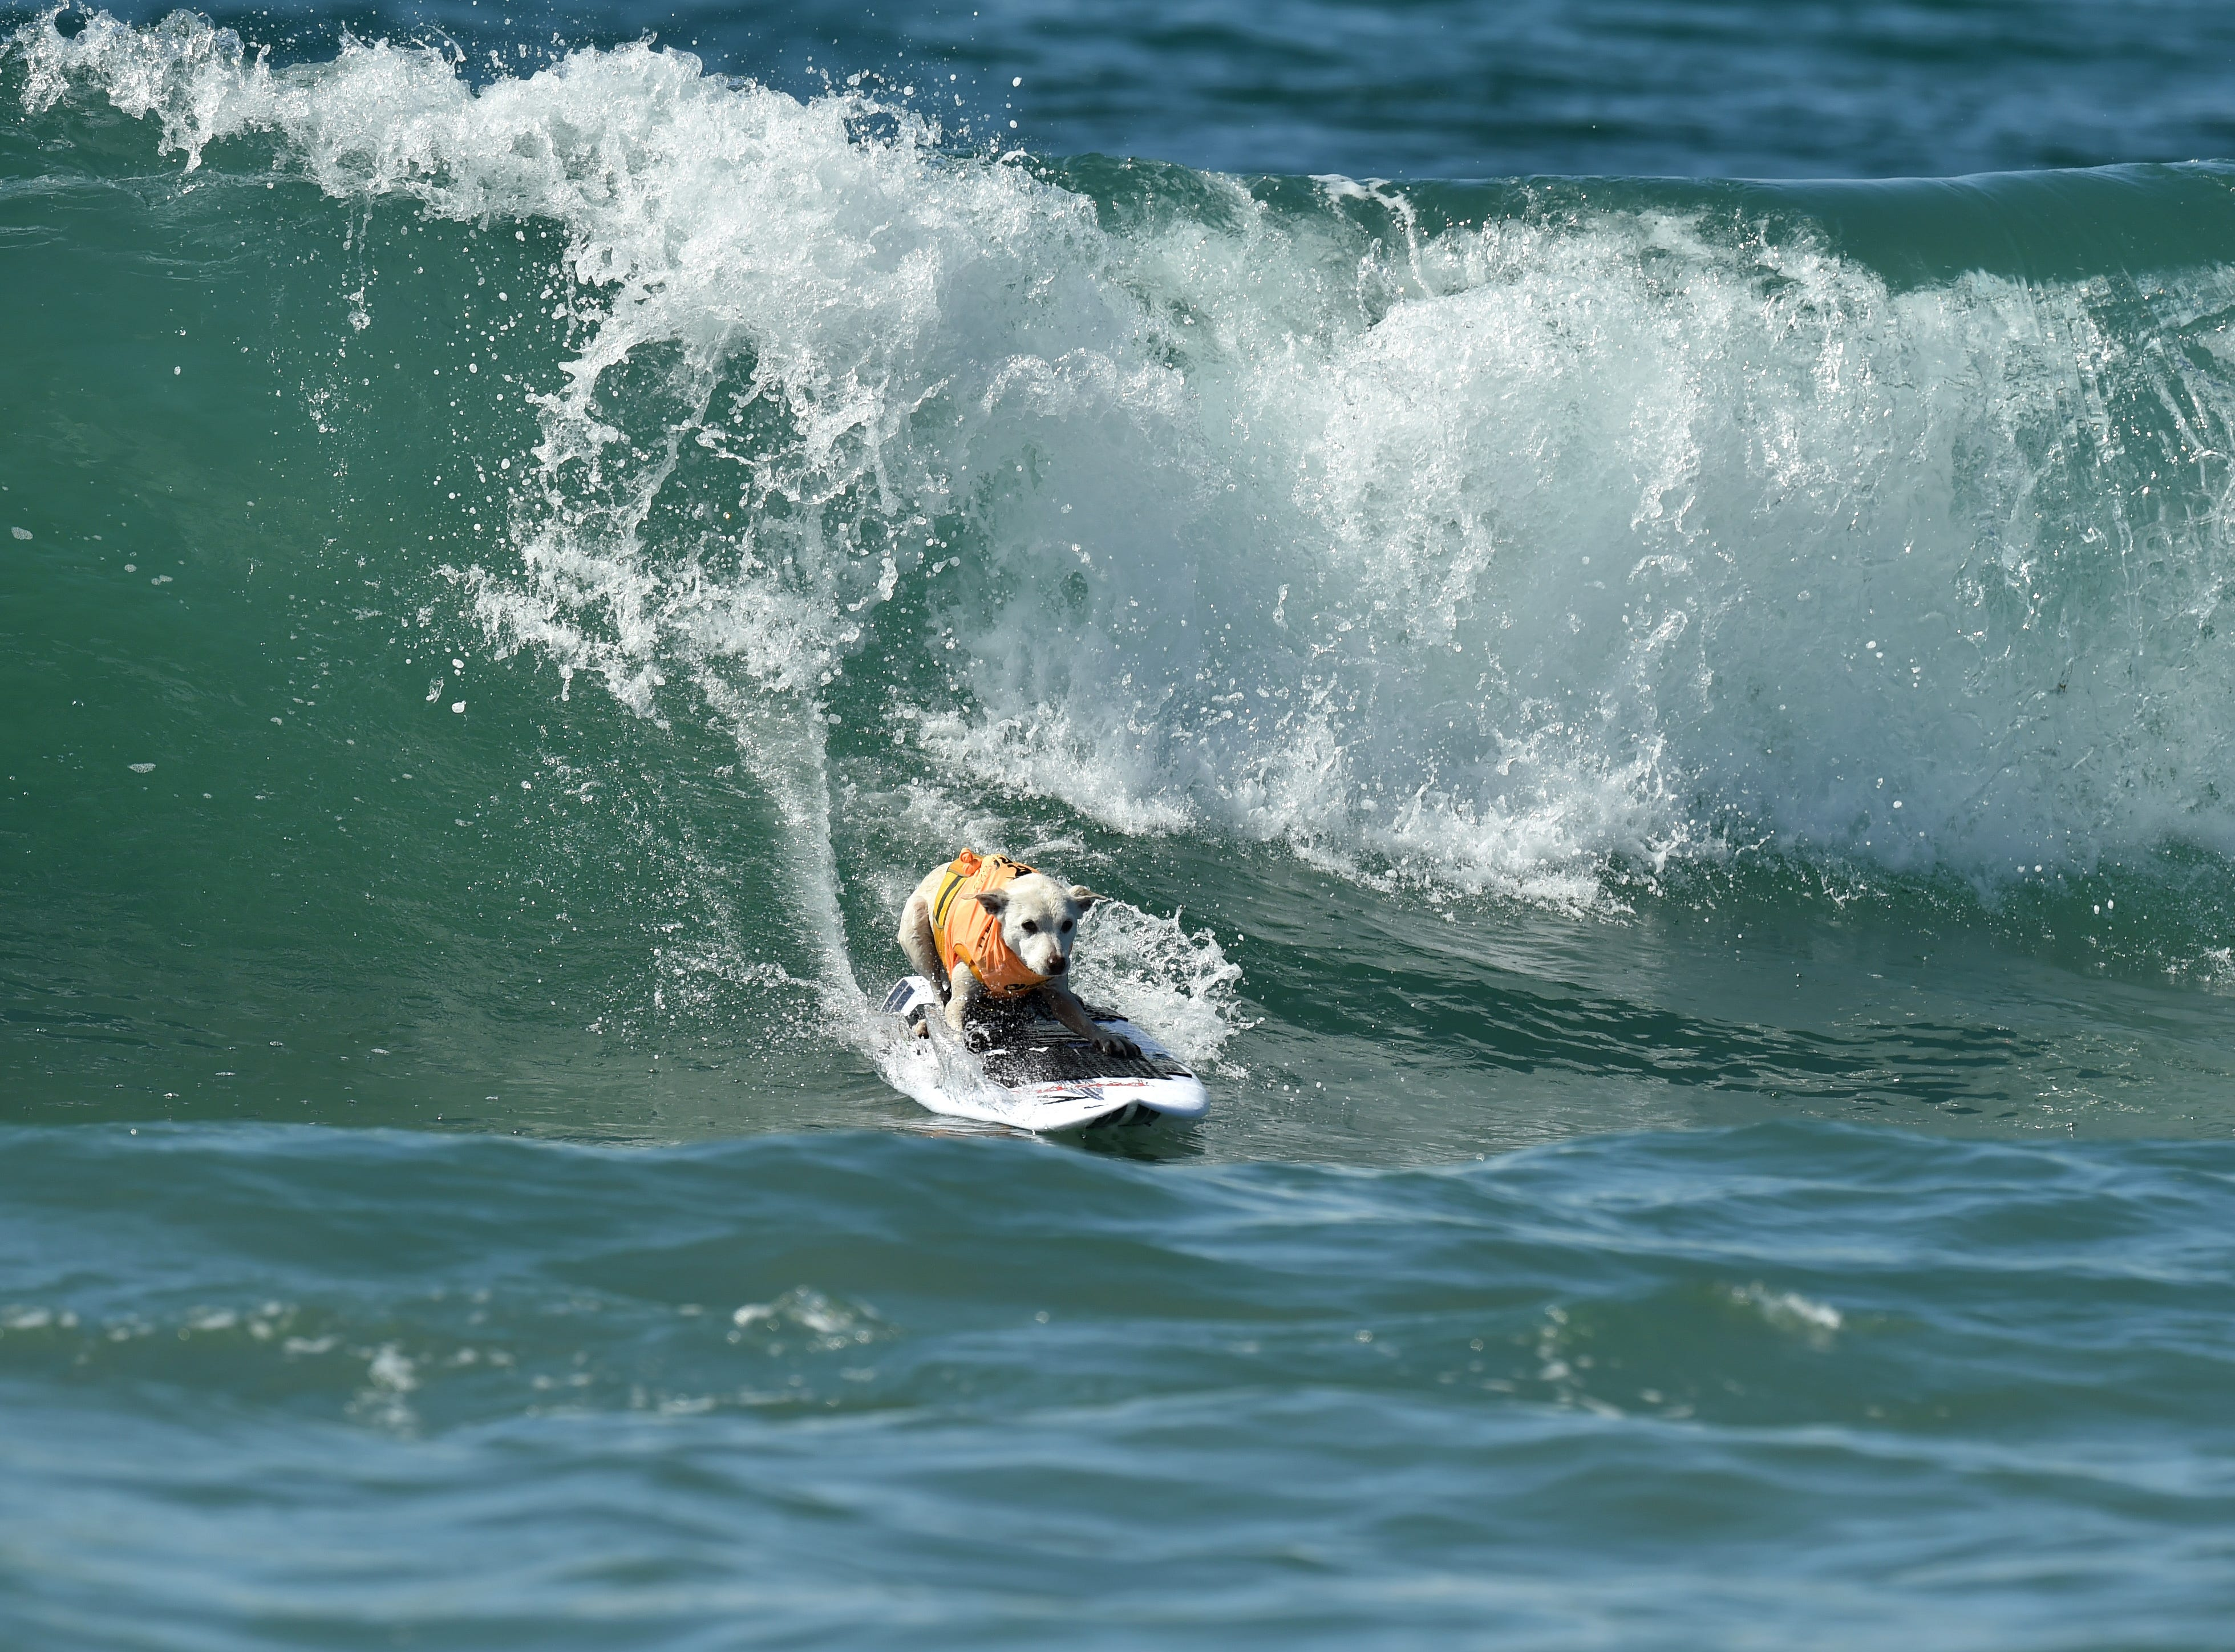 Sugar the surfing dog rides a wave during the competition.